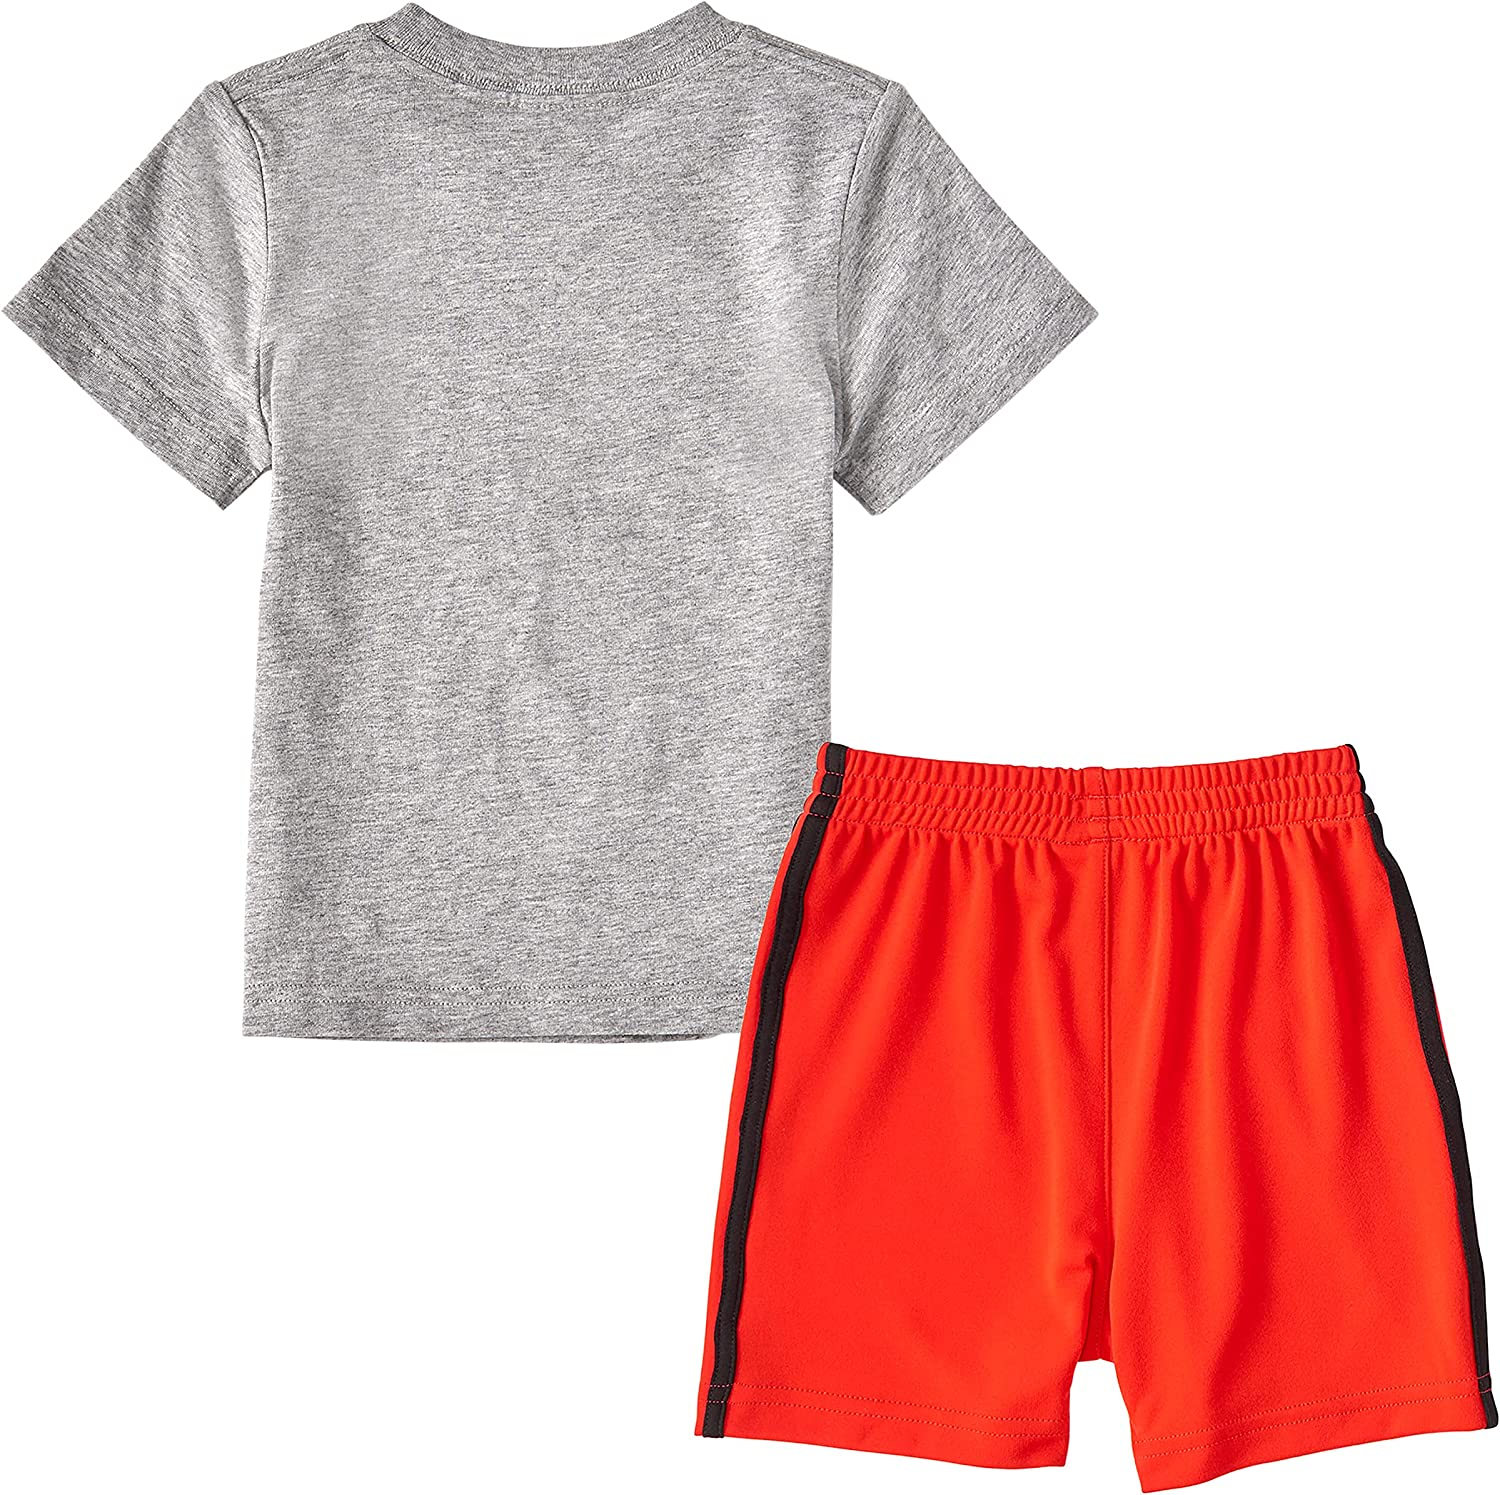 adidas Genuine Free Shipping Baby Boys Sleeve Cotton Tee Graphic Interlock Complete Free Shipping Shorts and